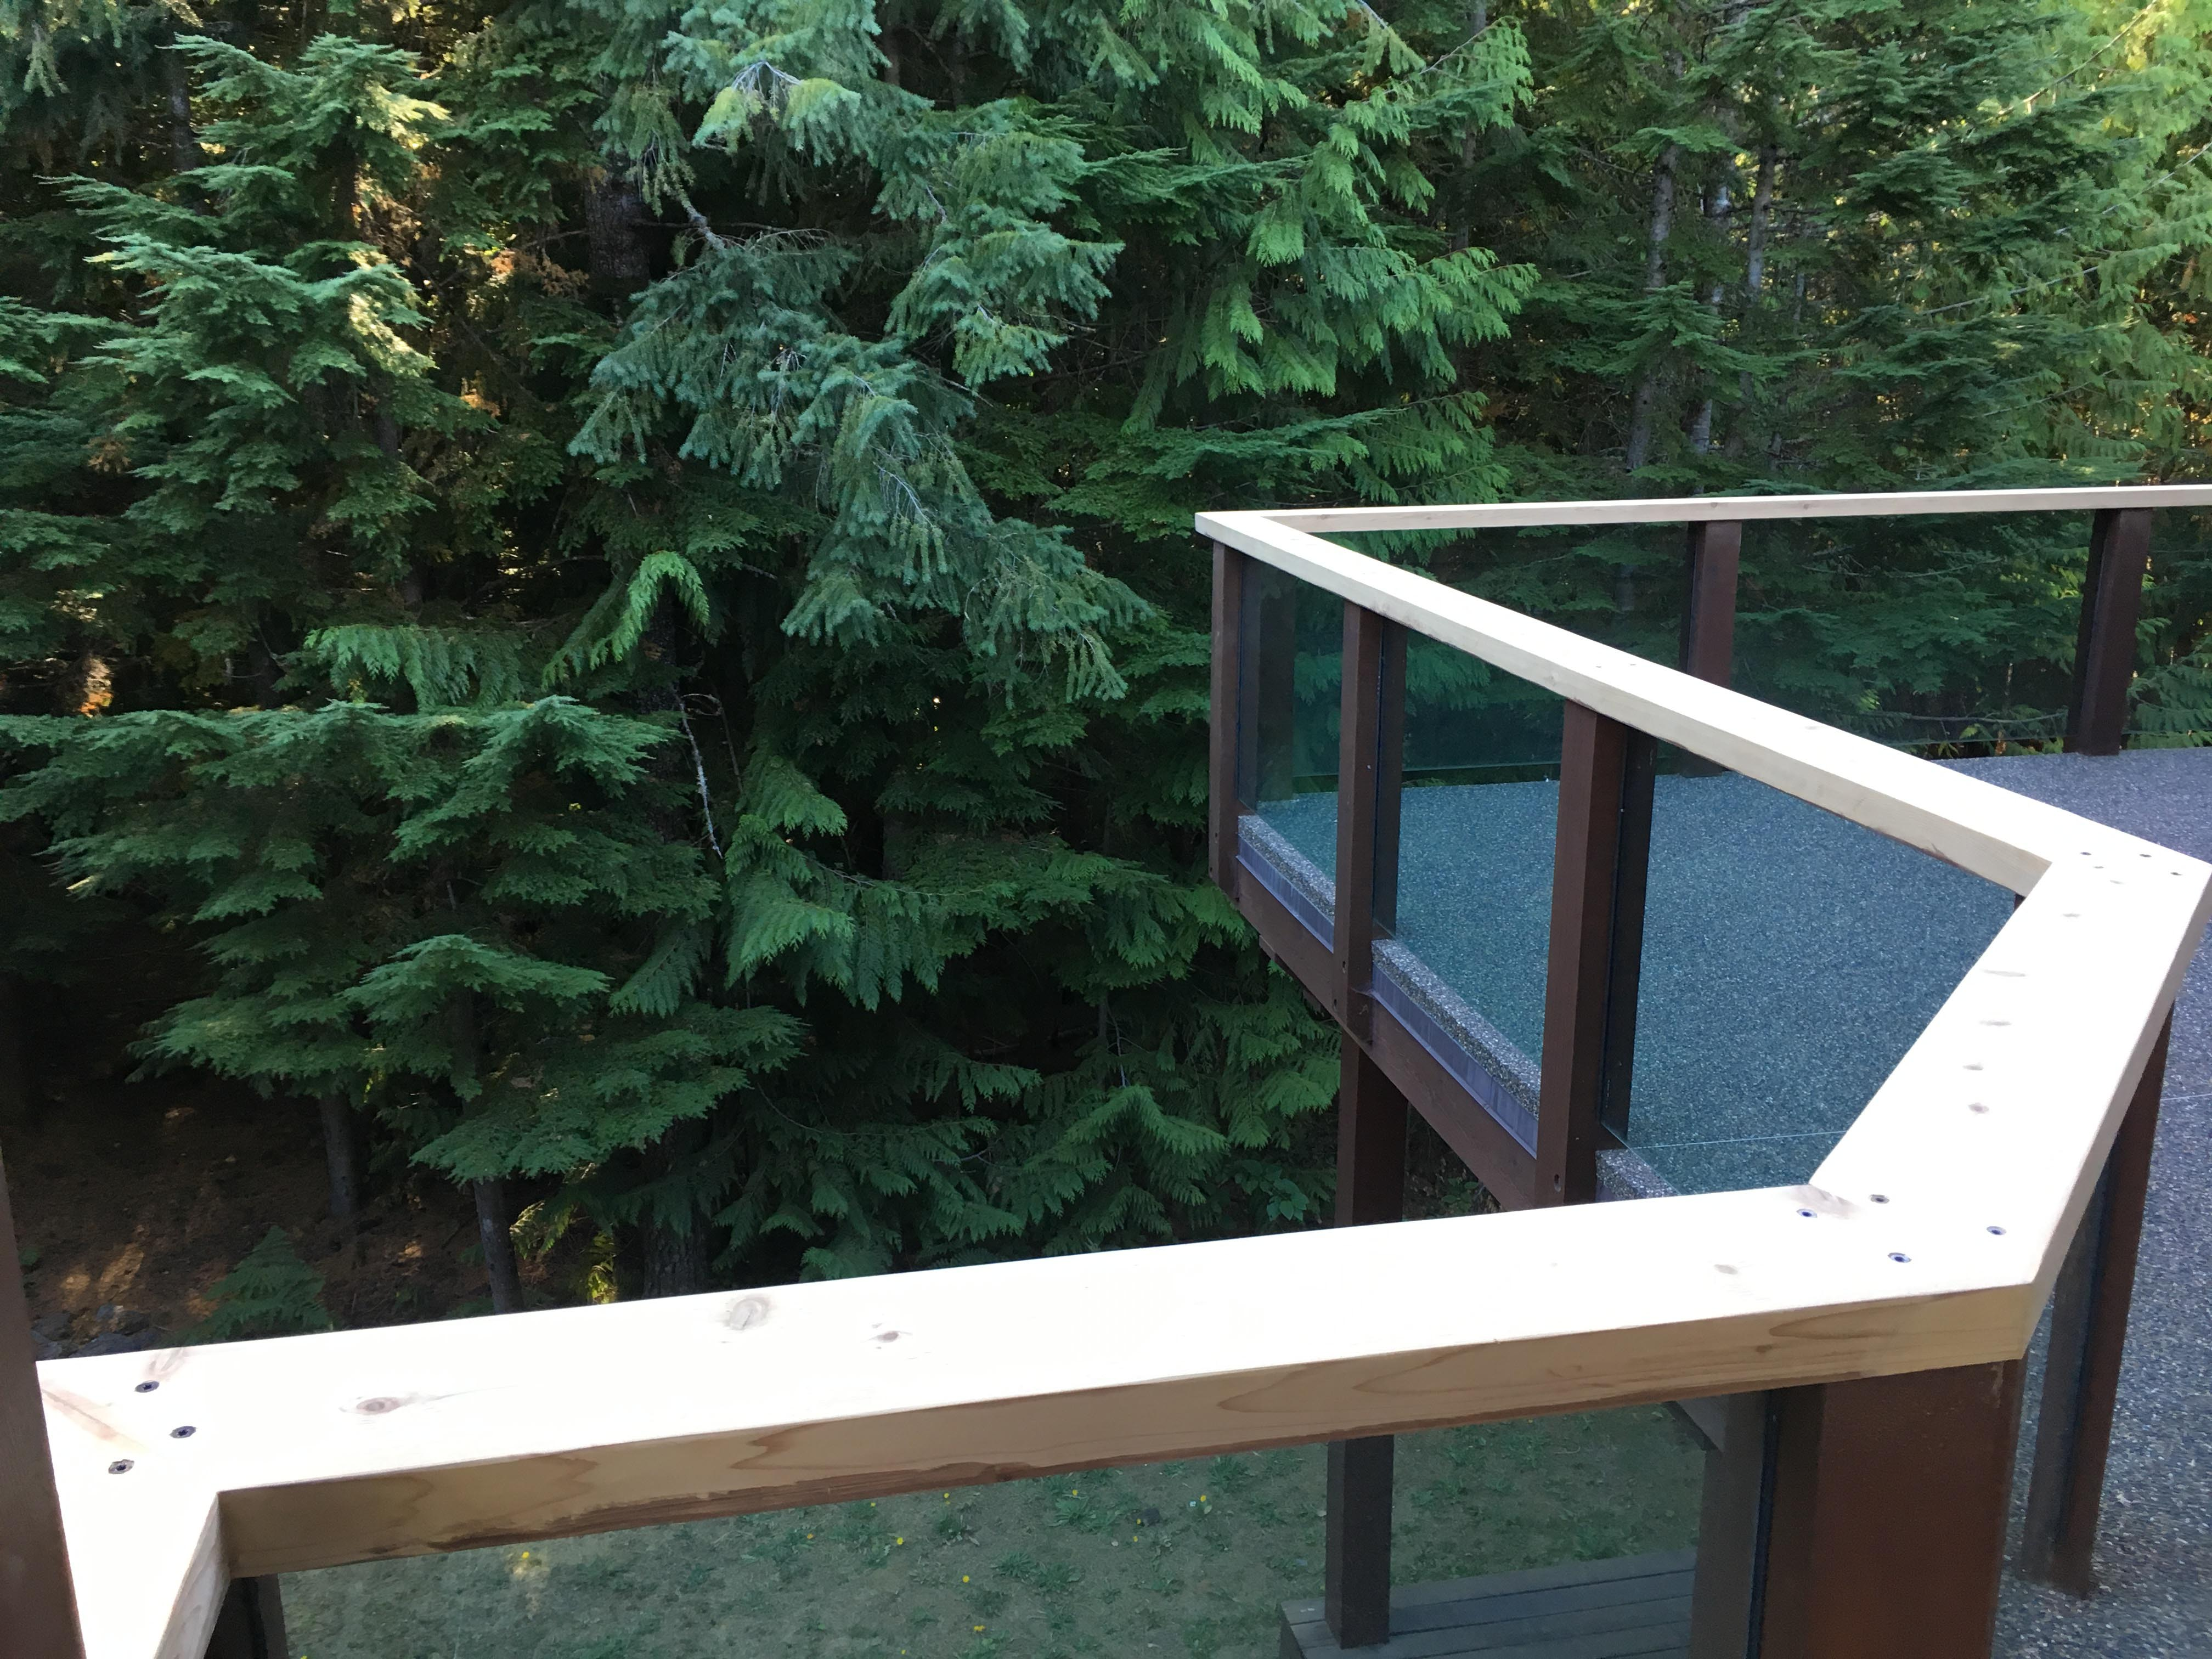 Pound 4 Pound, Framing and Forming. Exterior railing Whistler